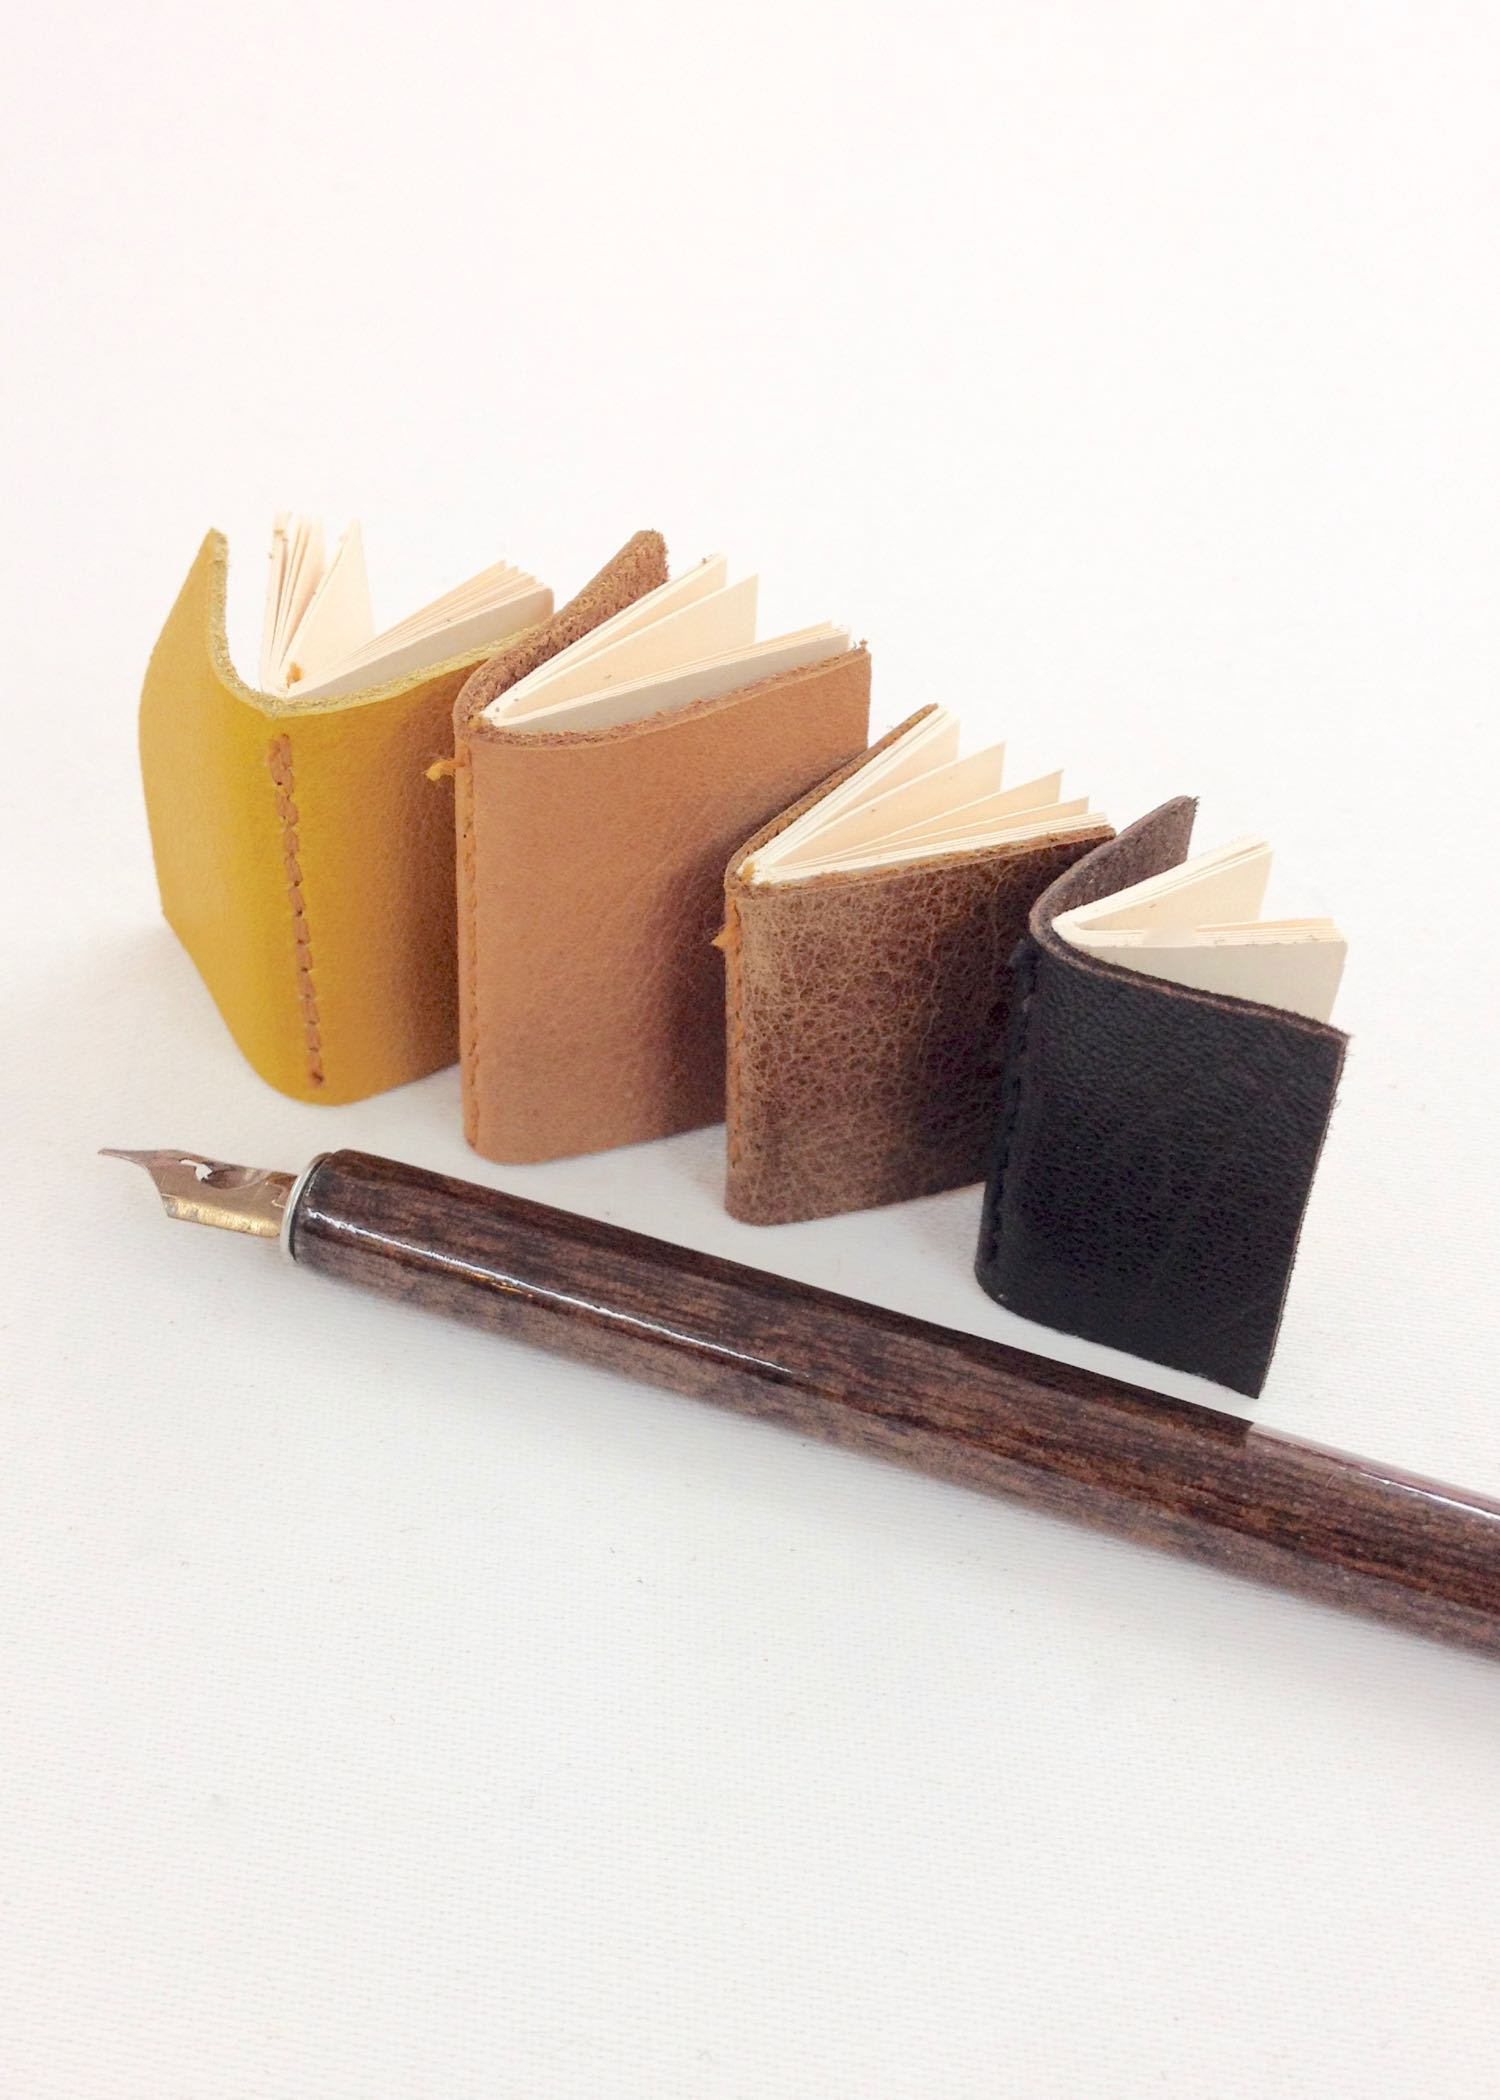 Miniature leather bound books by Laura Mirjami | Mirjami Design